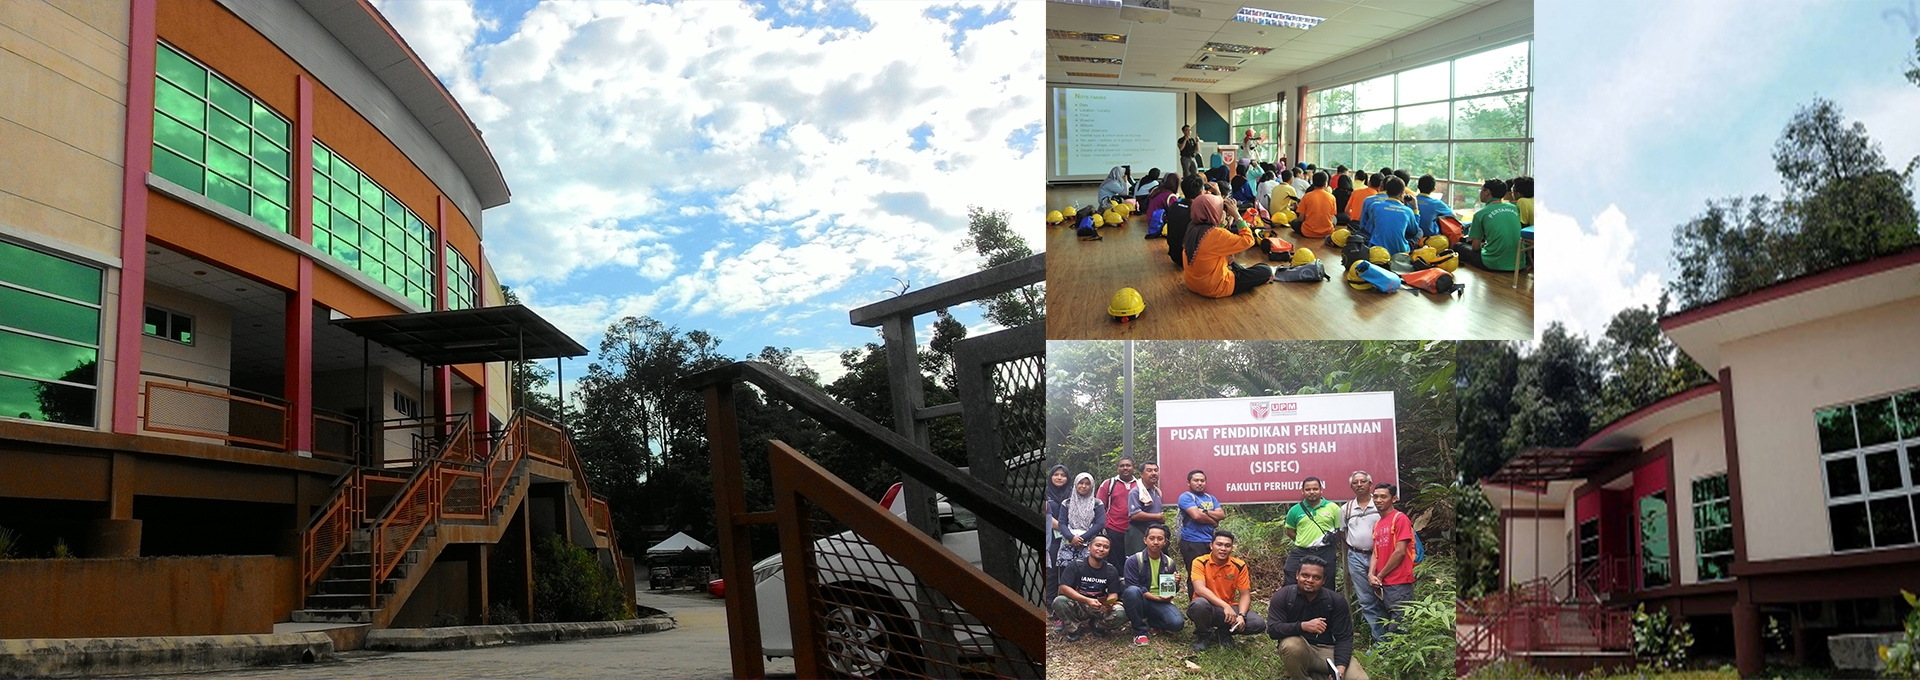 Sultan Idris Shah Forestry Education Centre (SISFEC)